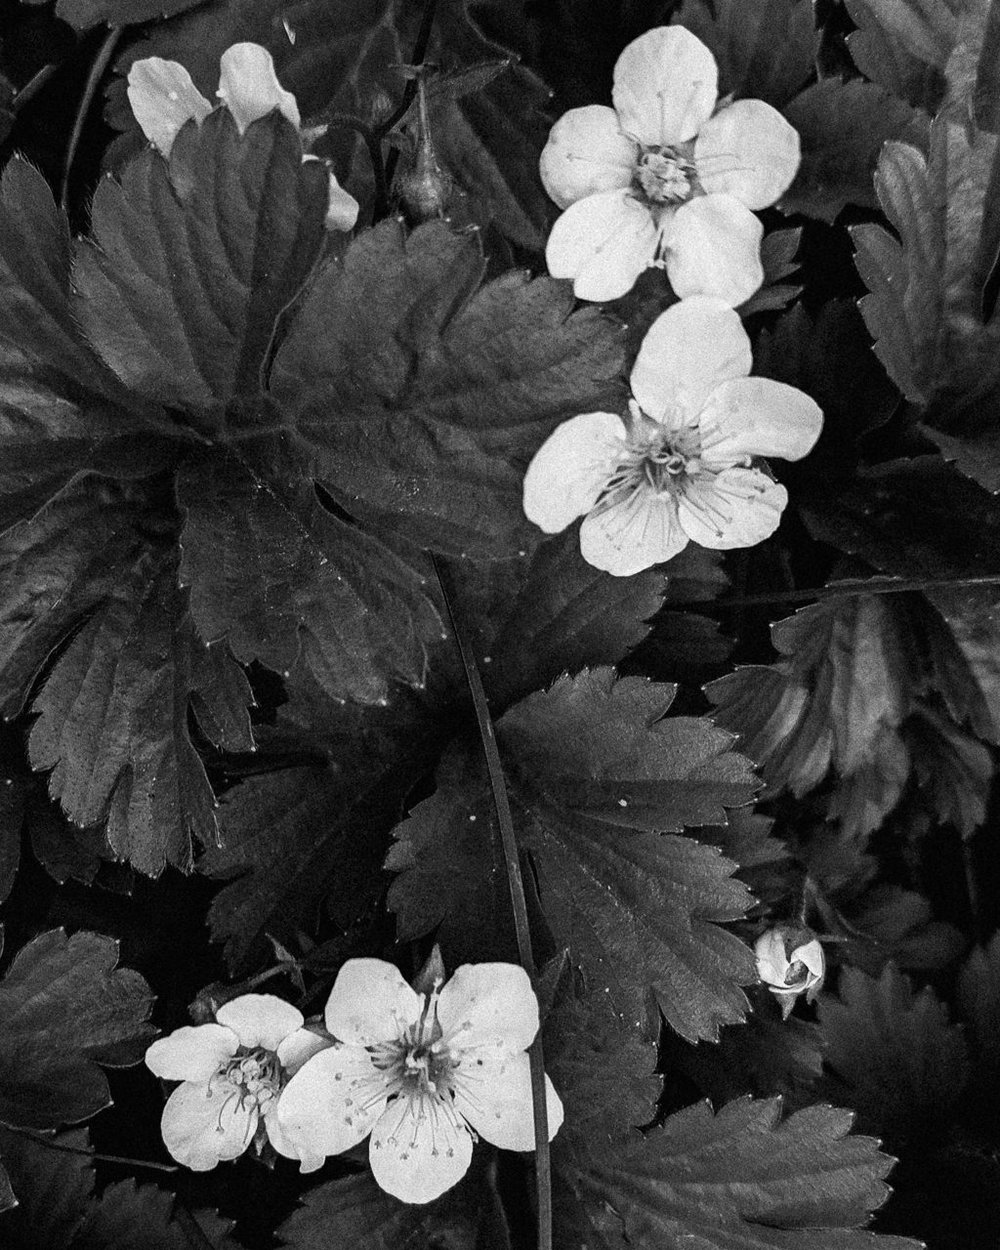 Day 122- 365 Day B&W Photo Challenge - Strawberries are starting to blossom. - Google Pixel 3, VSCO Neopan Acros 400 Film Simulation